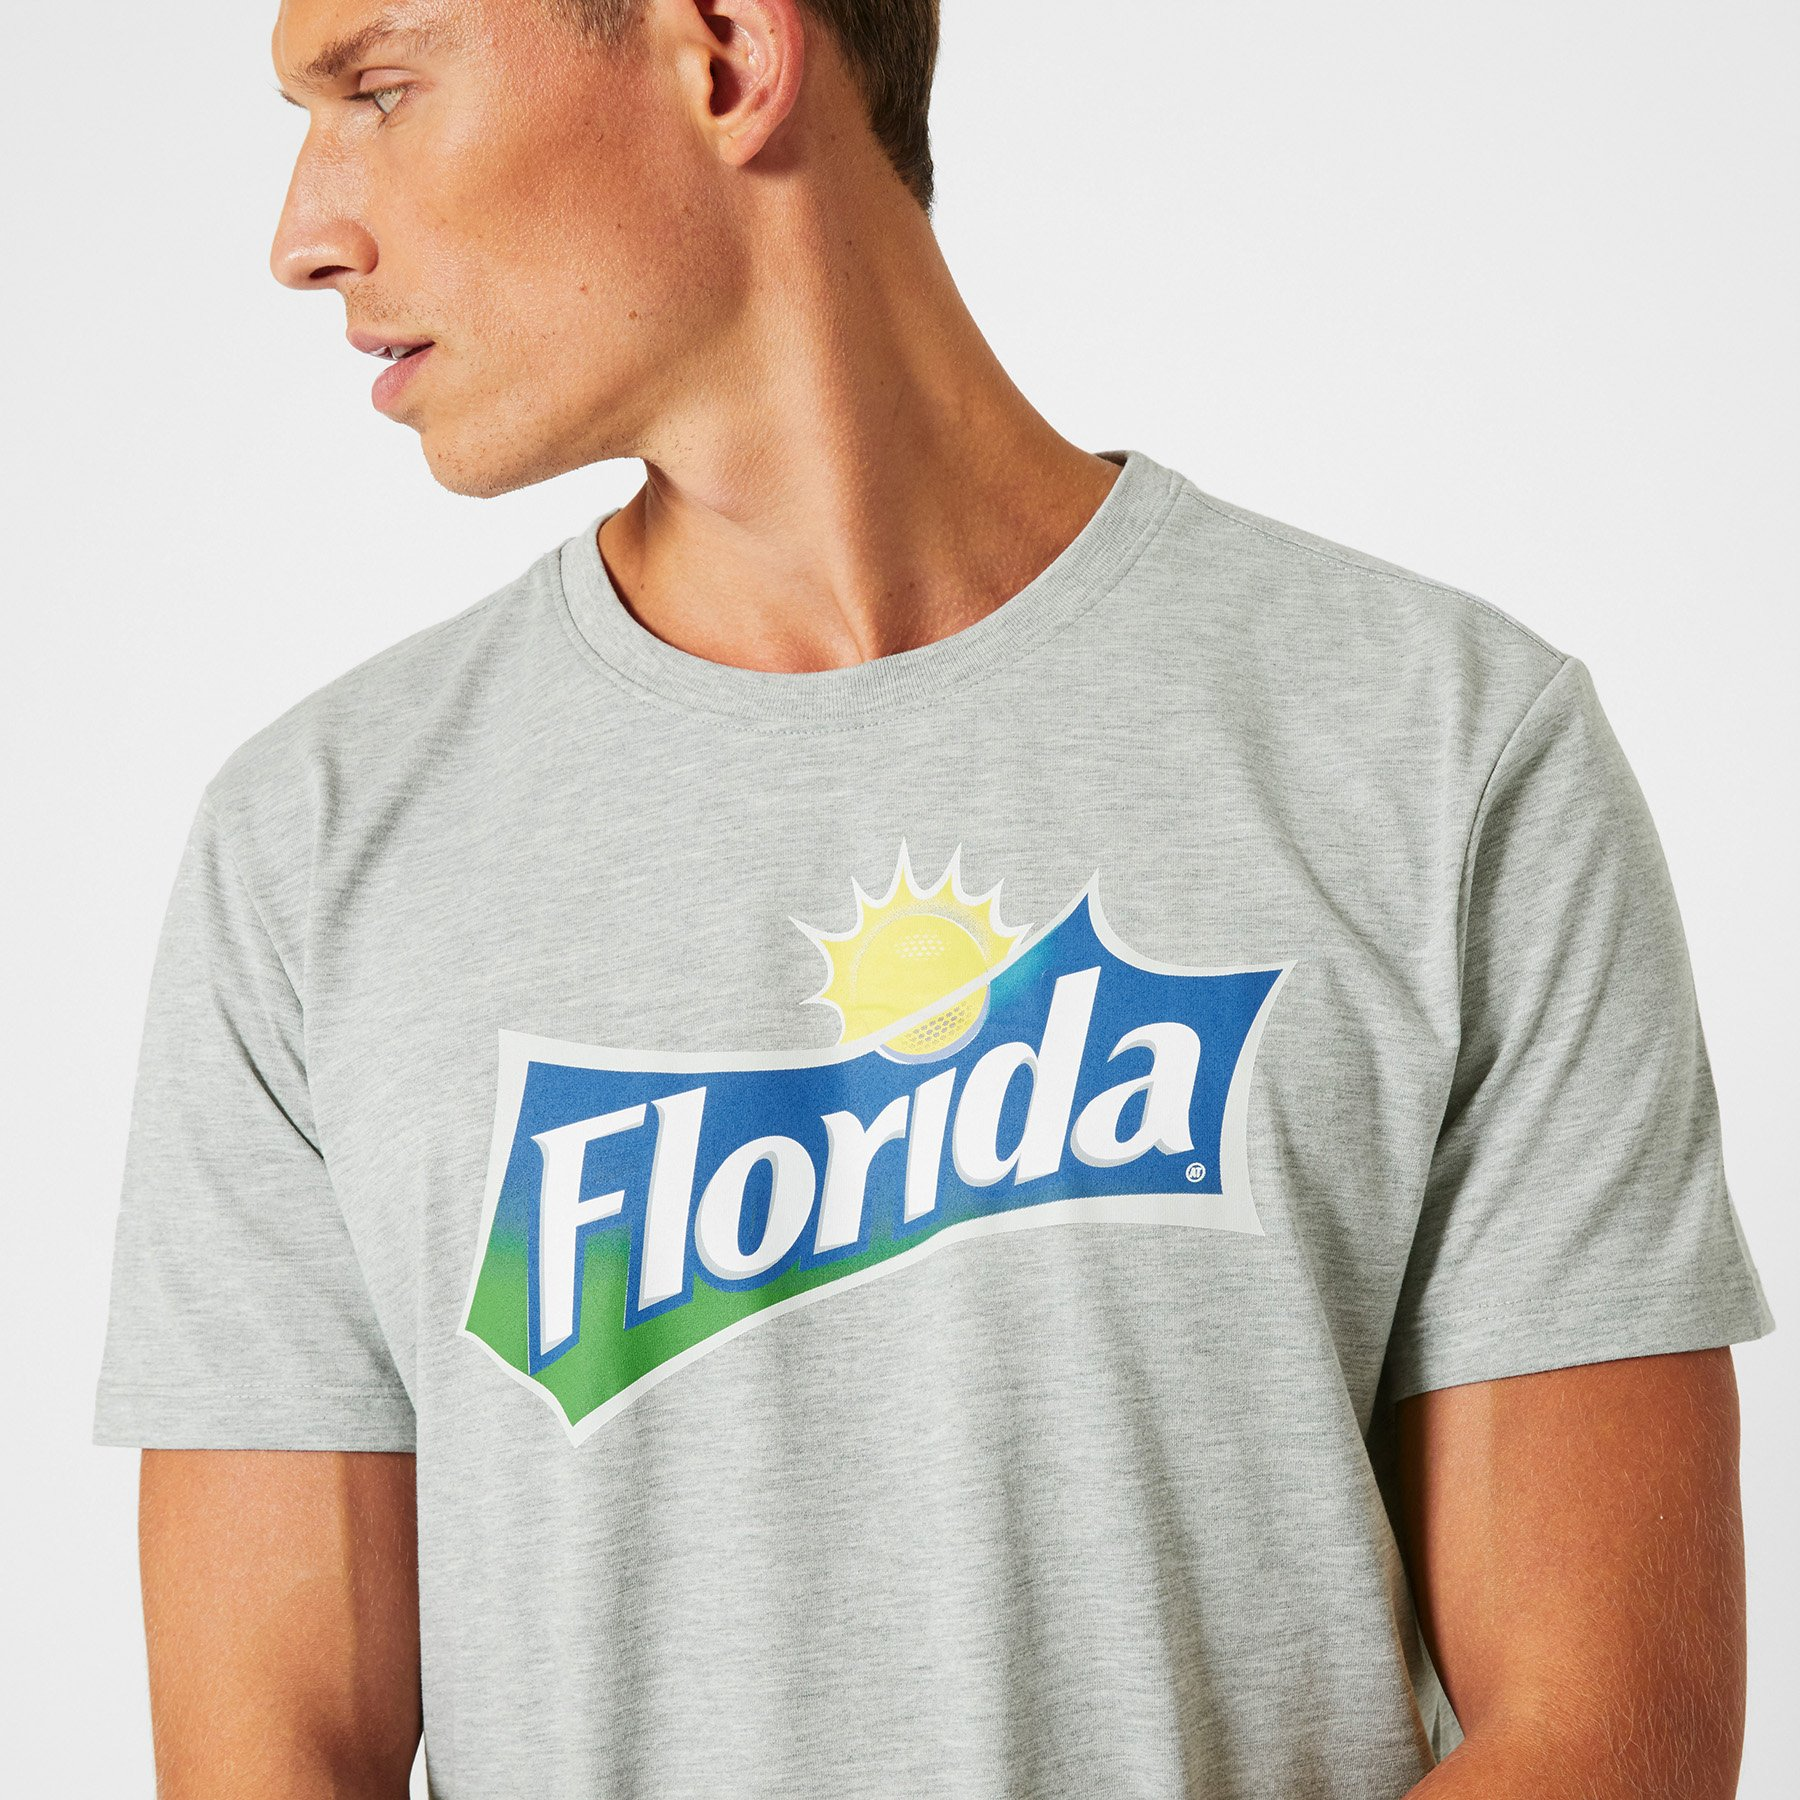 T-shirt Ed florida